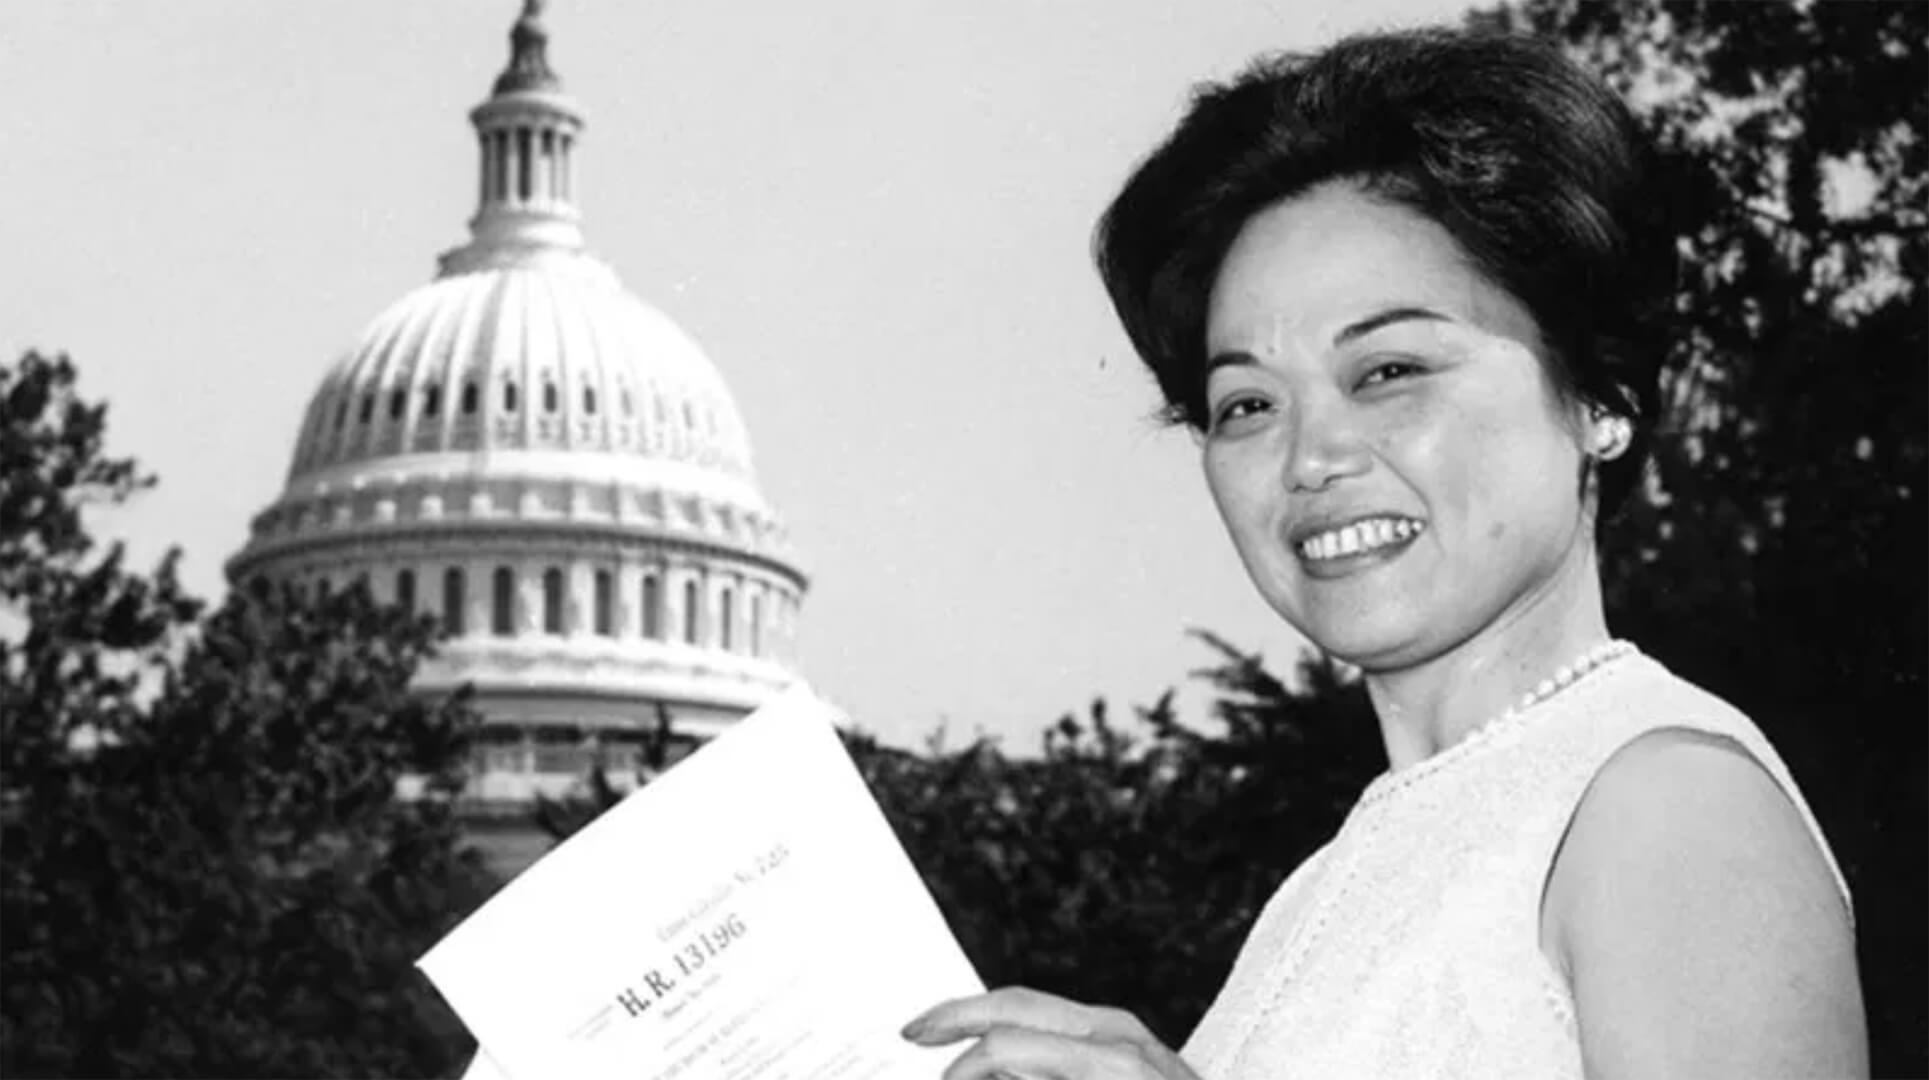 A woman is pictured with the U.S. Capitol Building in the background.